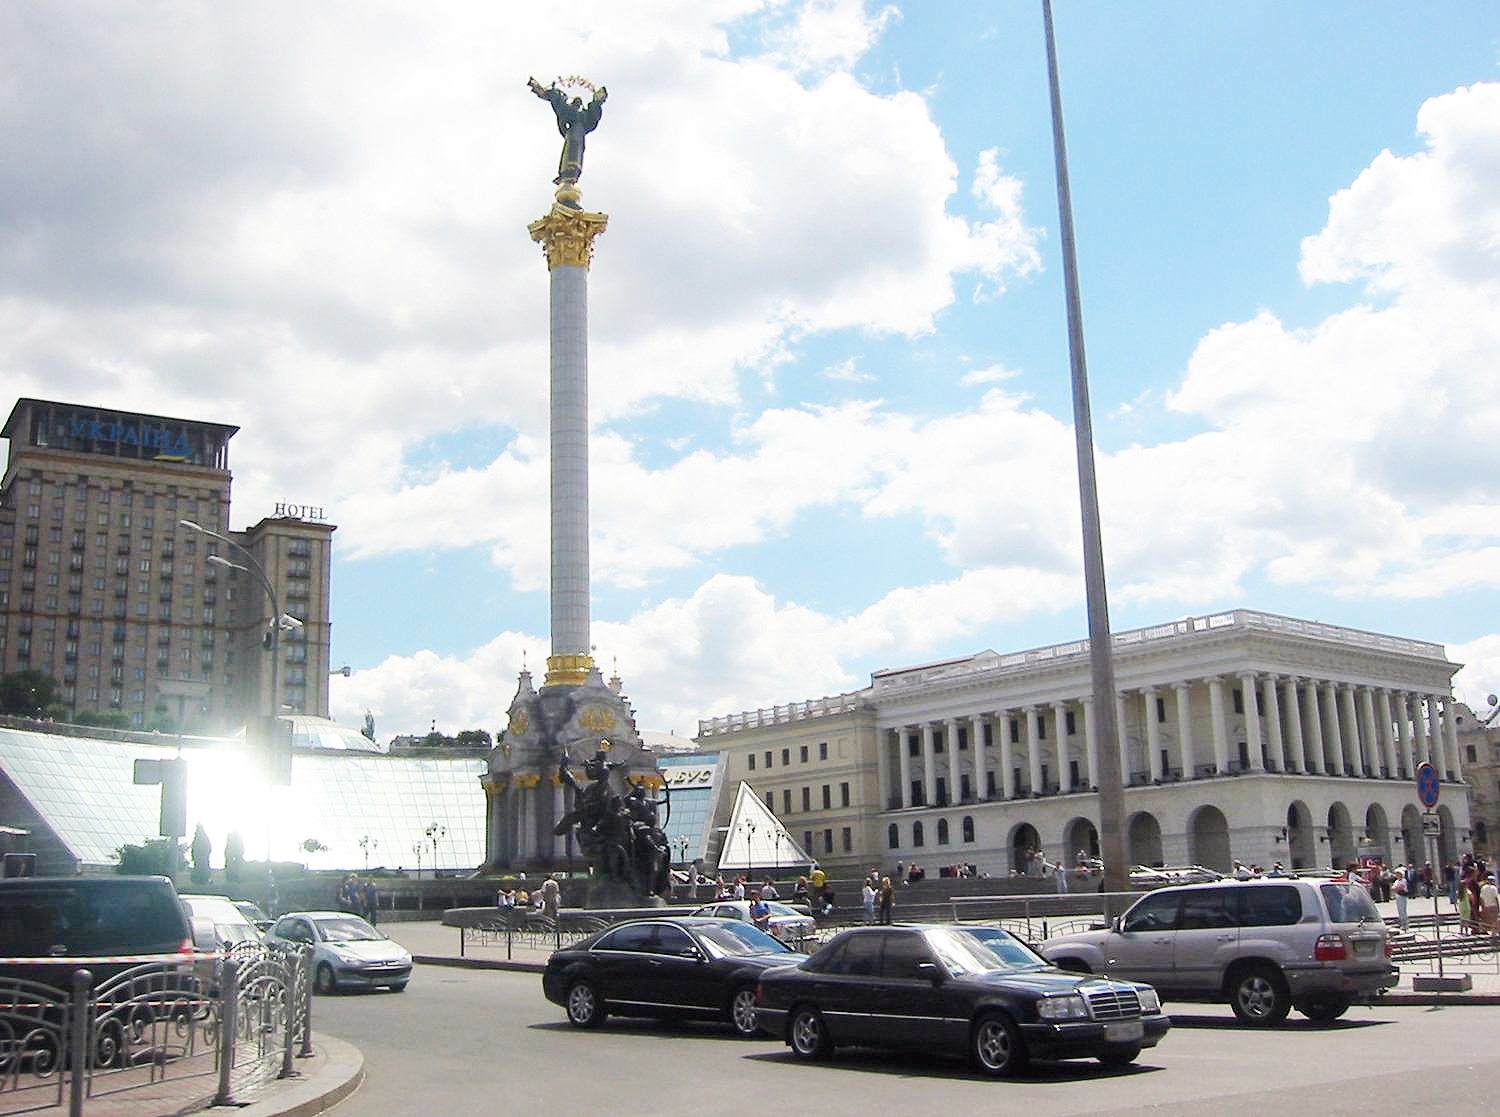 Maidan Square in Kiev, Ukraine